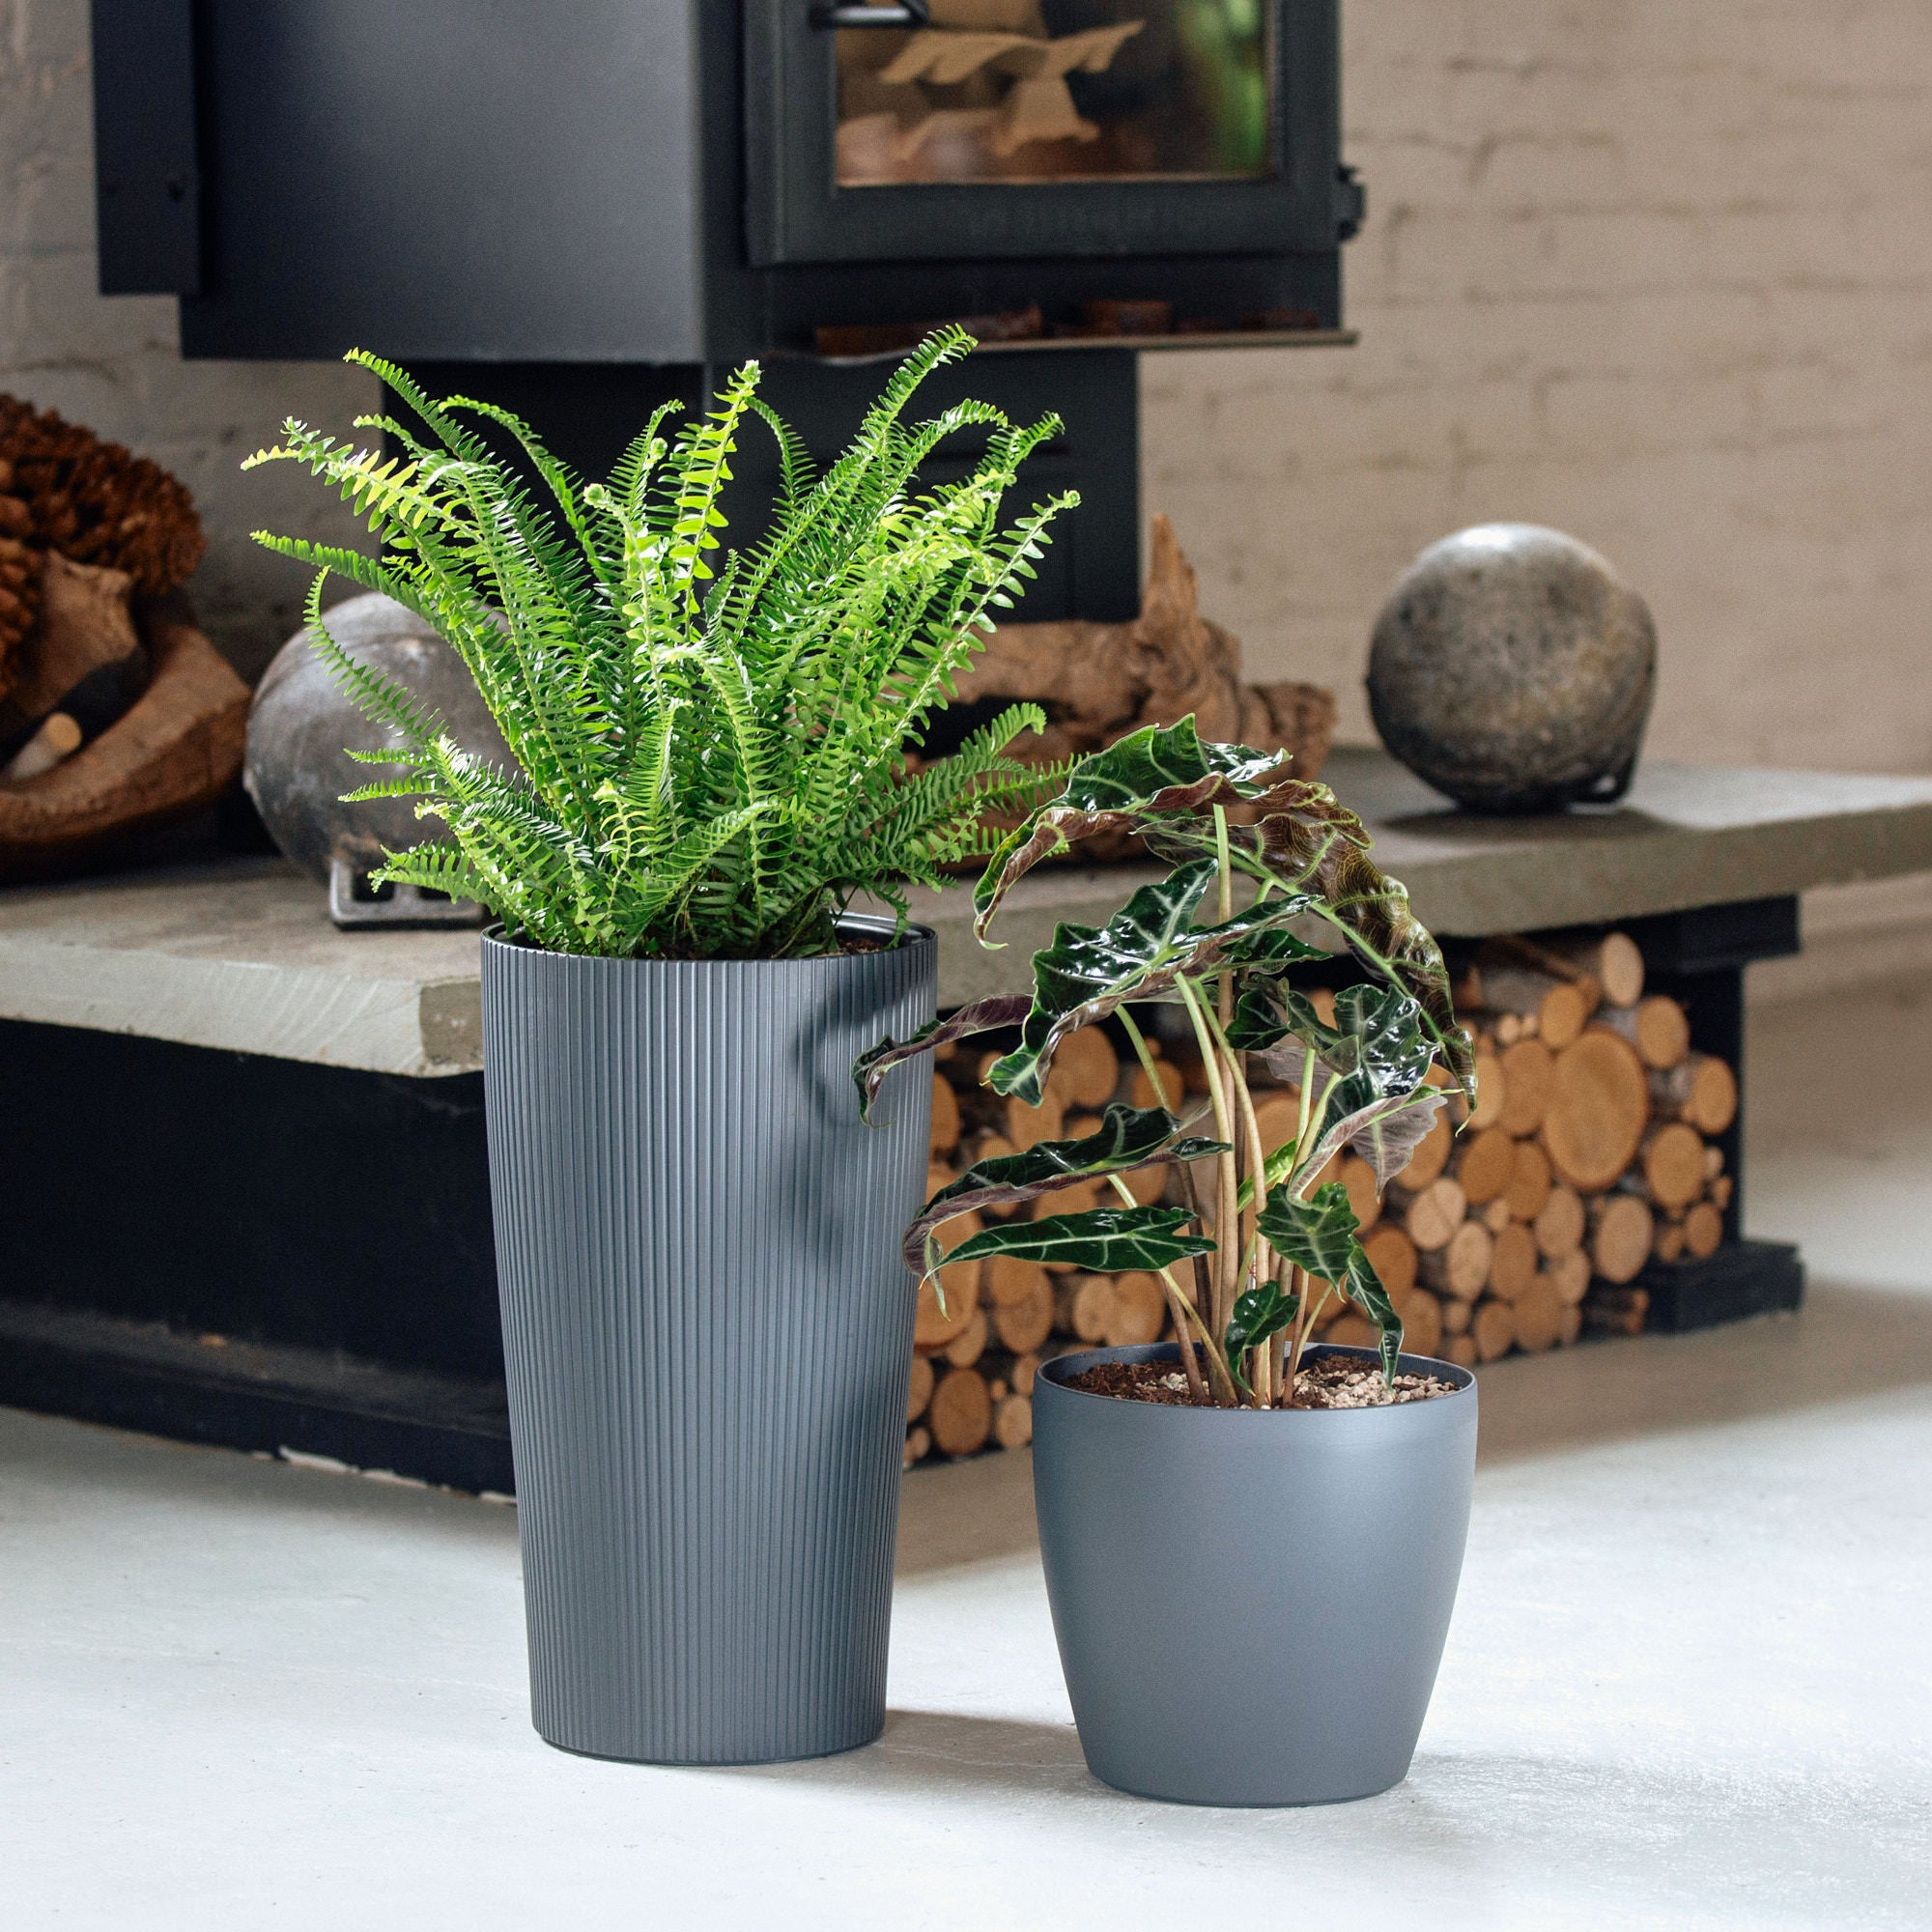 Astoria Plant Bundle In Self-watering Slate Planters